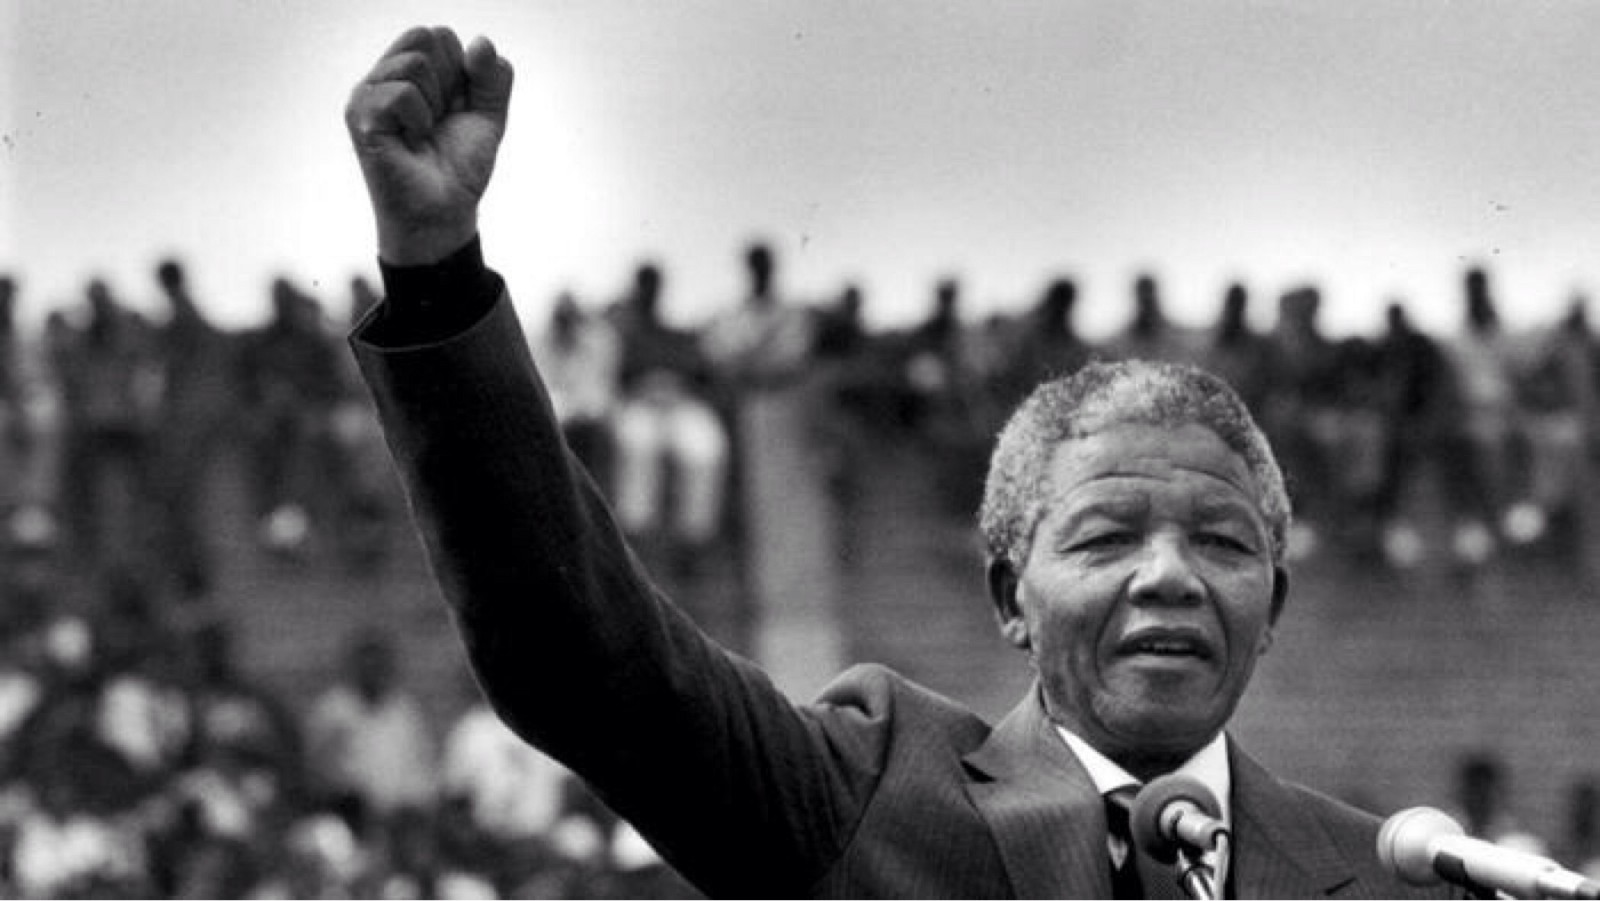 nelson mandela with arm up